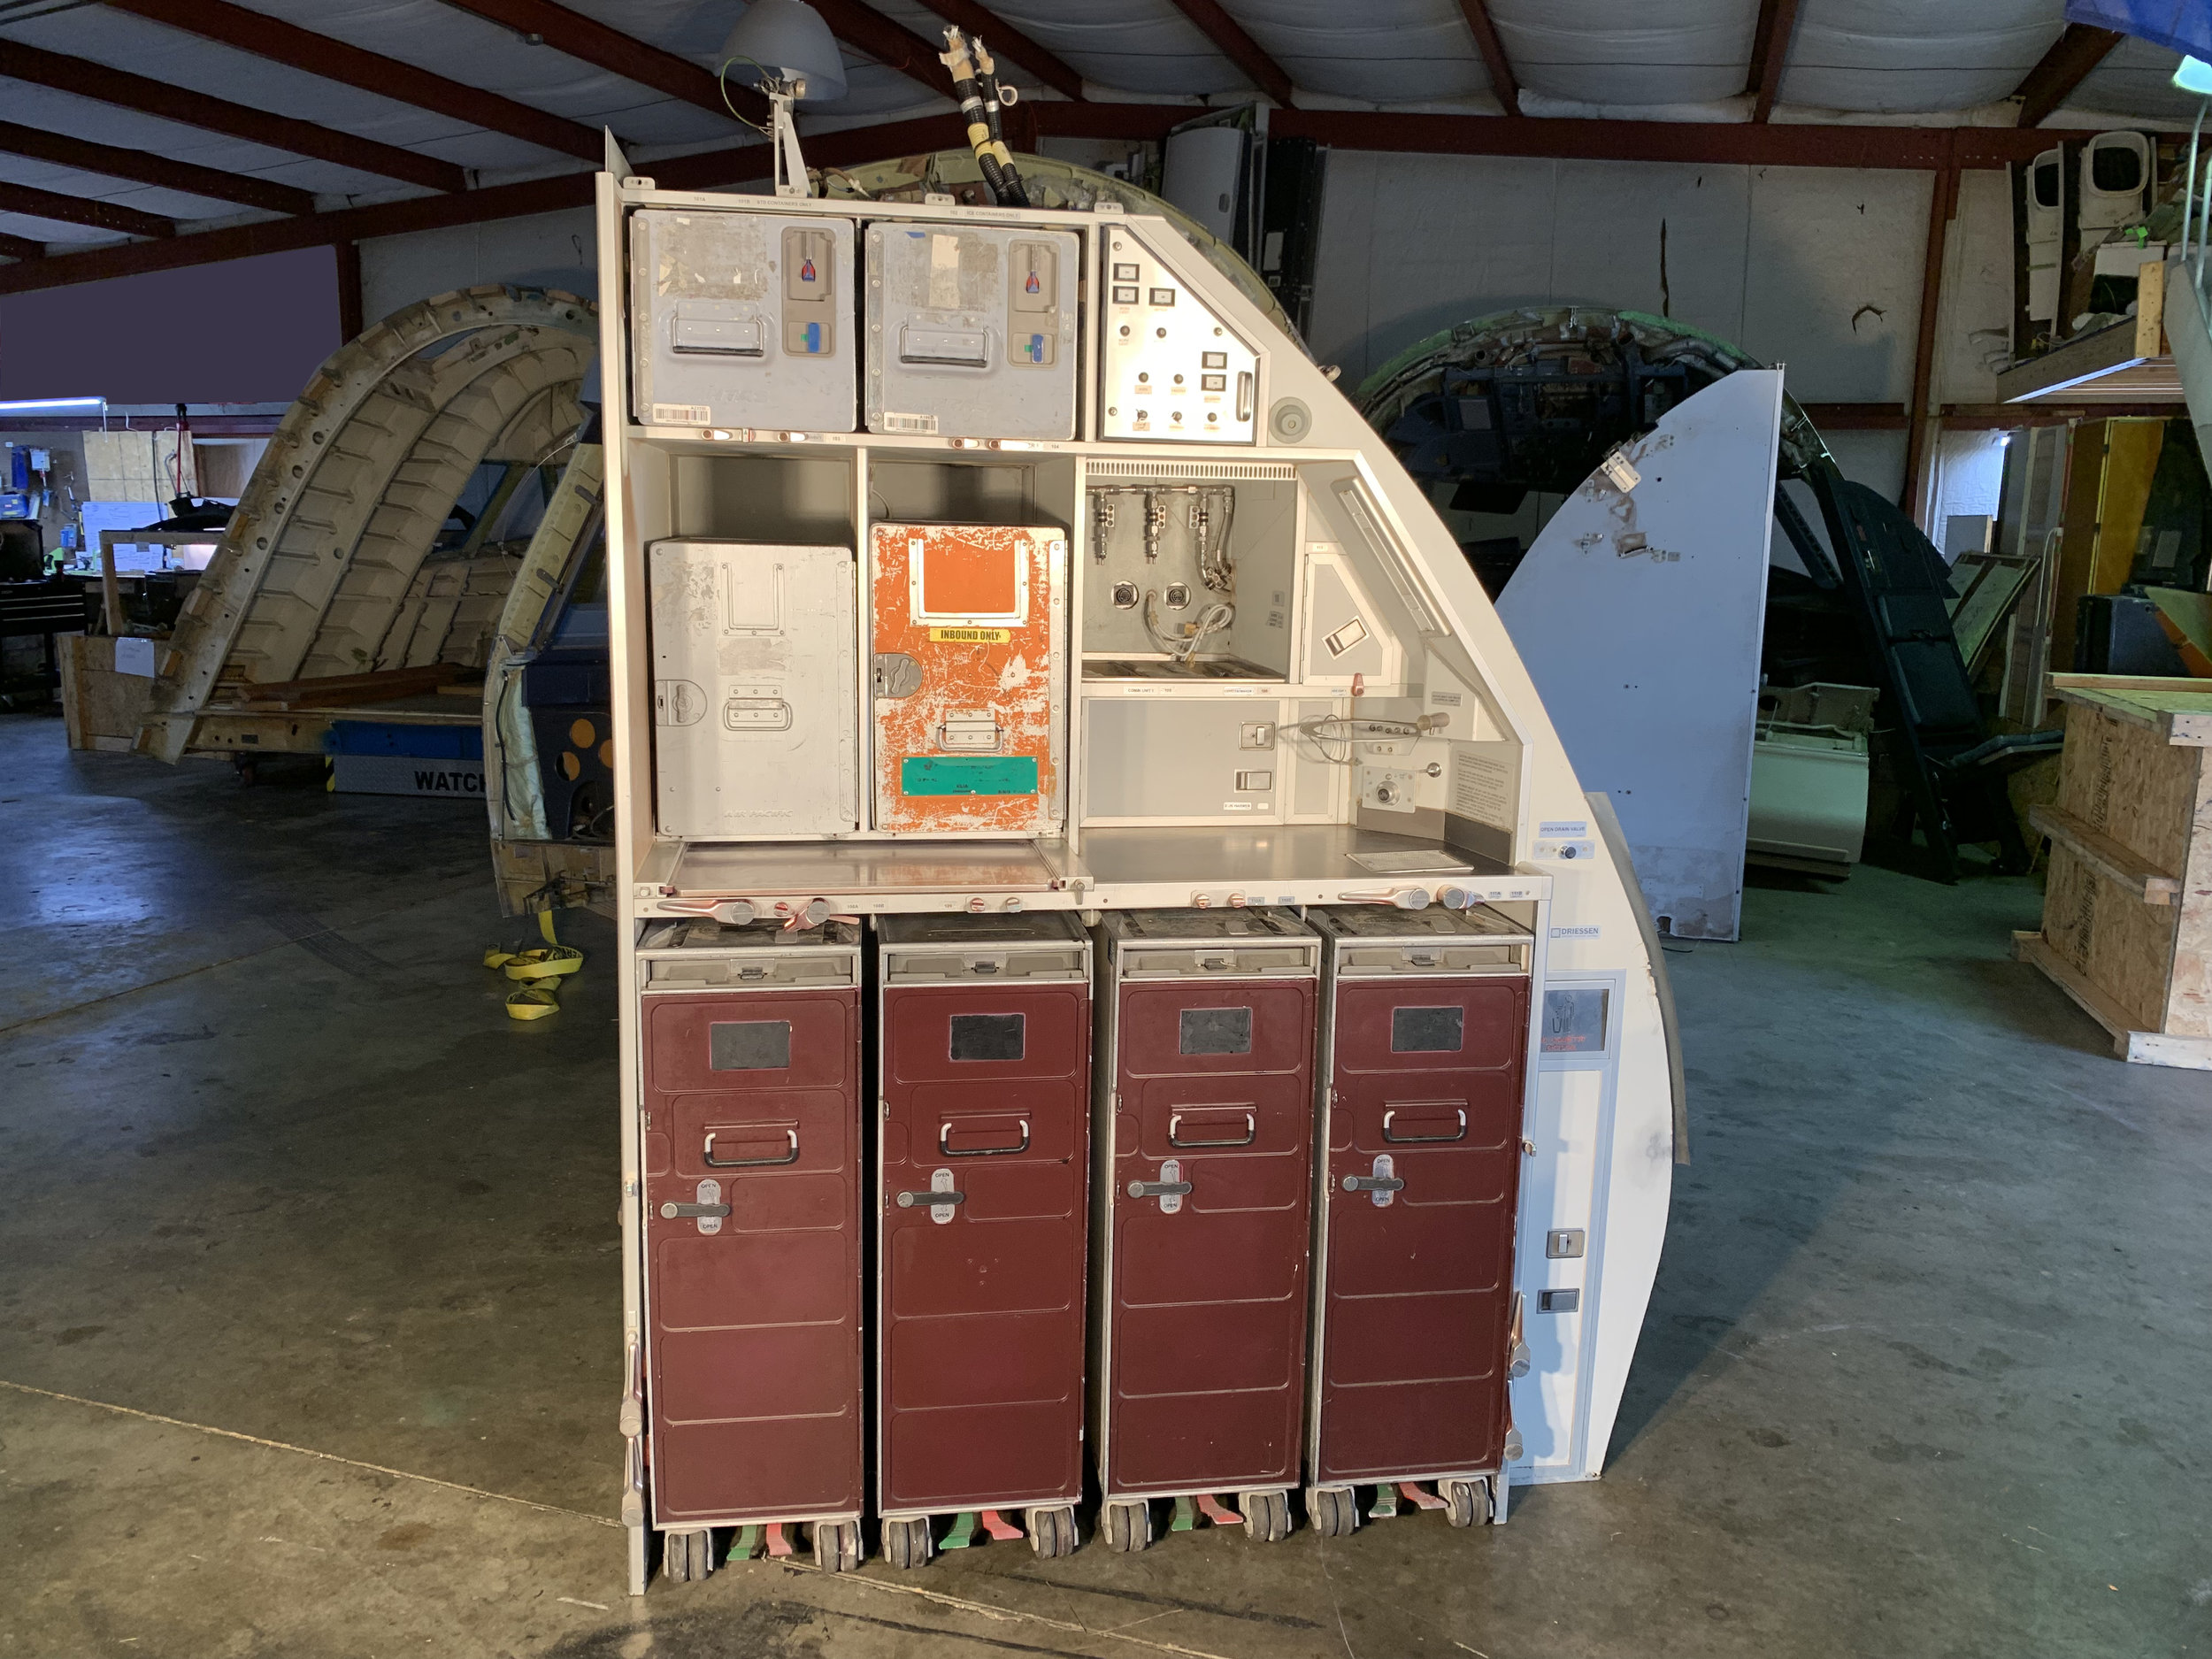 Narrow Body Galley - A320 - This galley is ex-A320, and comes complete with containers, galley carts, bins, hatches and trash can.USD $3,500